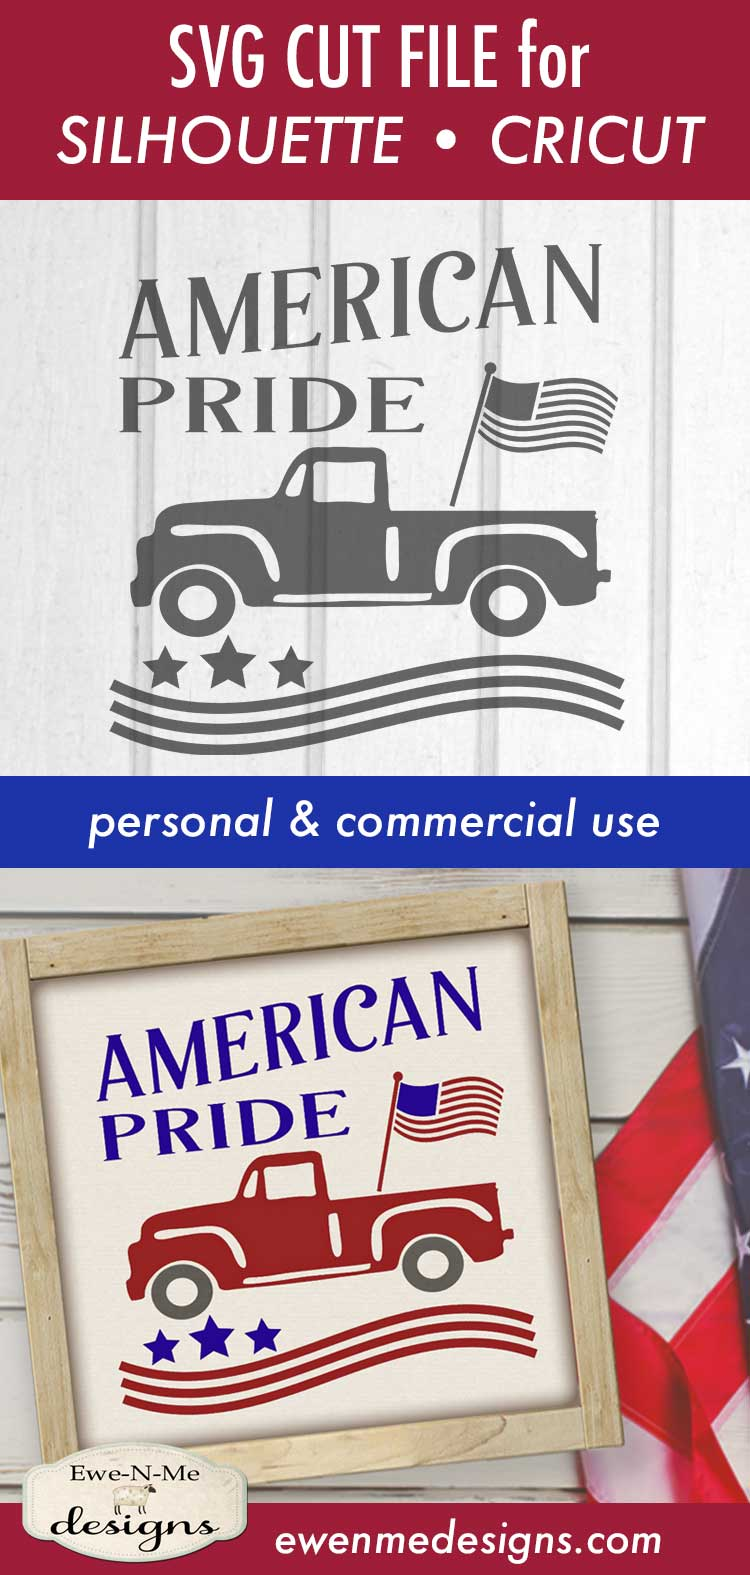 American Pride - Vintage Truck - Flag 4th of July - SVG DXF example image 4